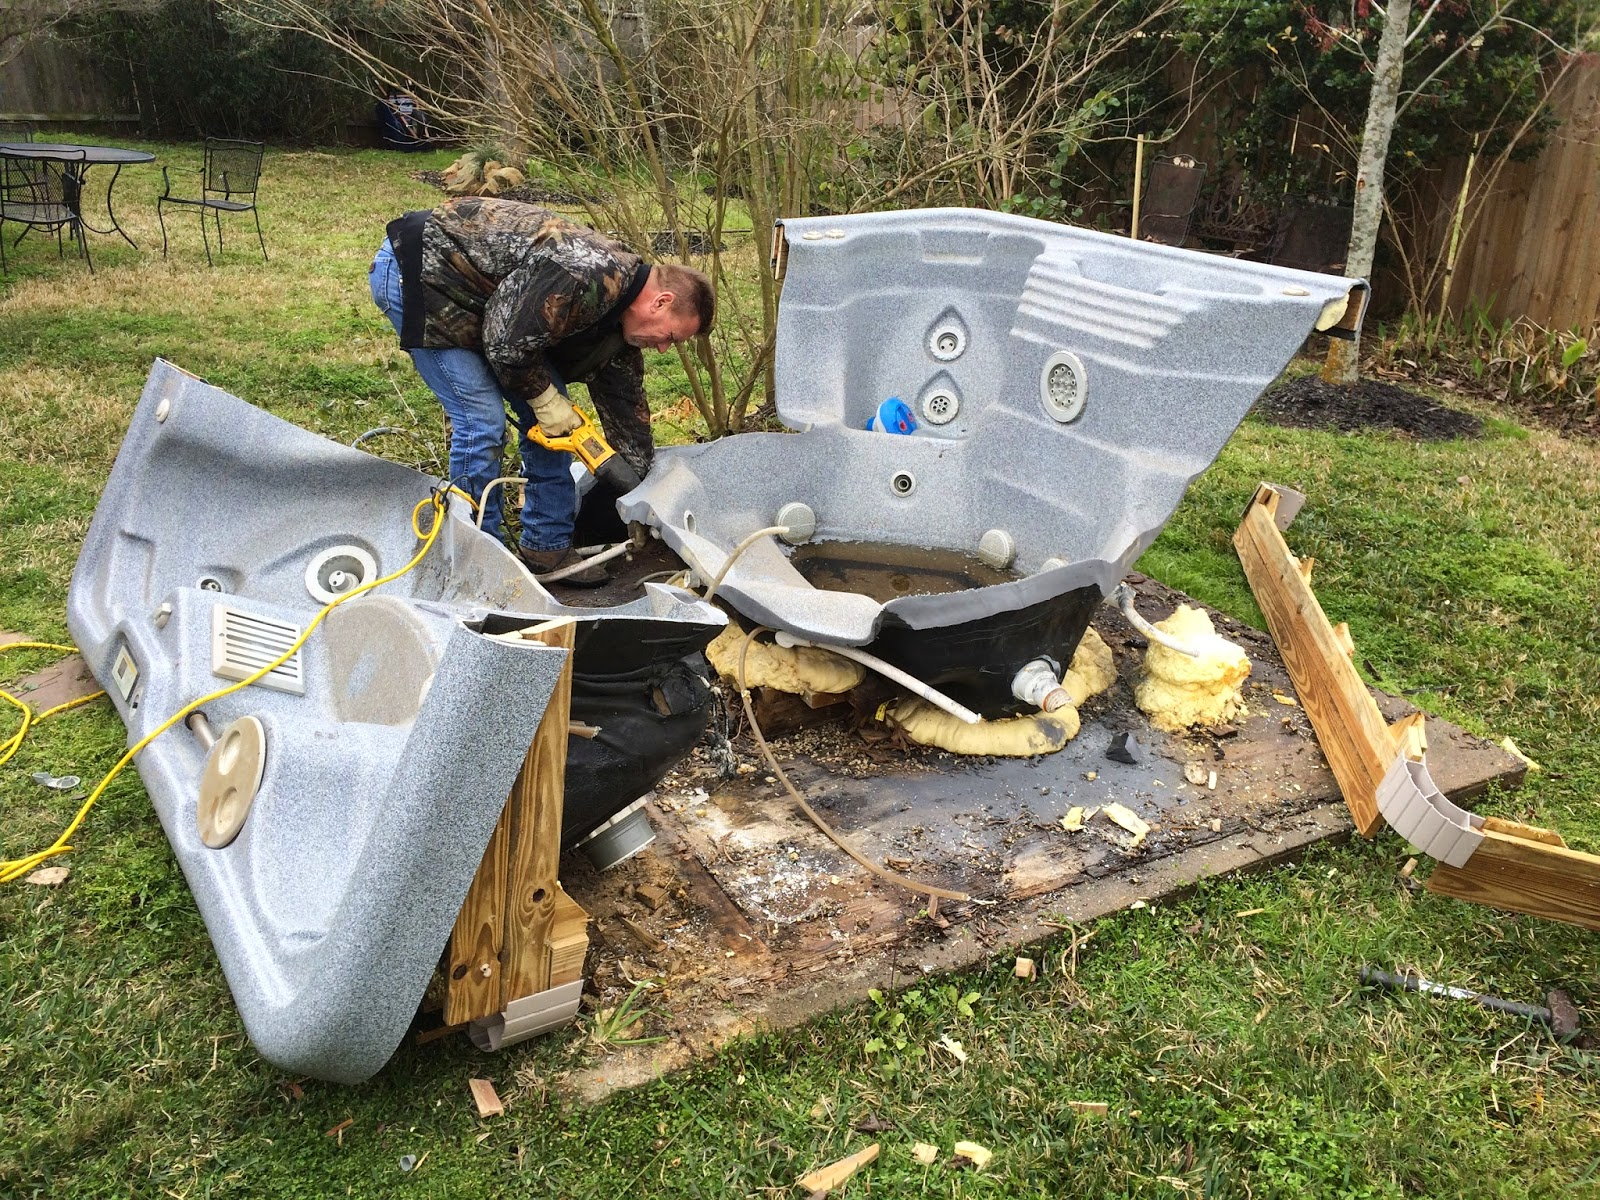 Hot Tub Removal Houston | Junk Services | Junk Removal Houston and ...